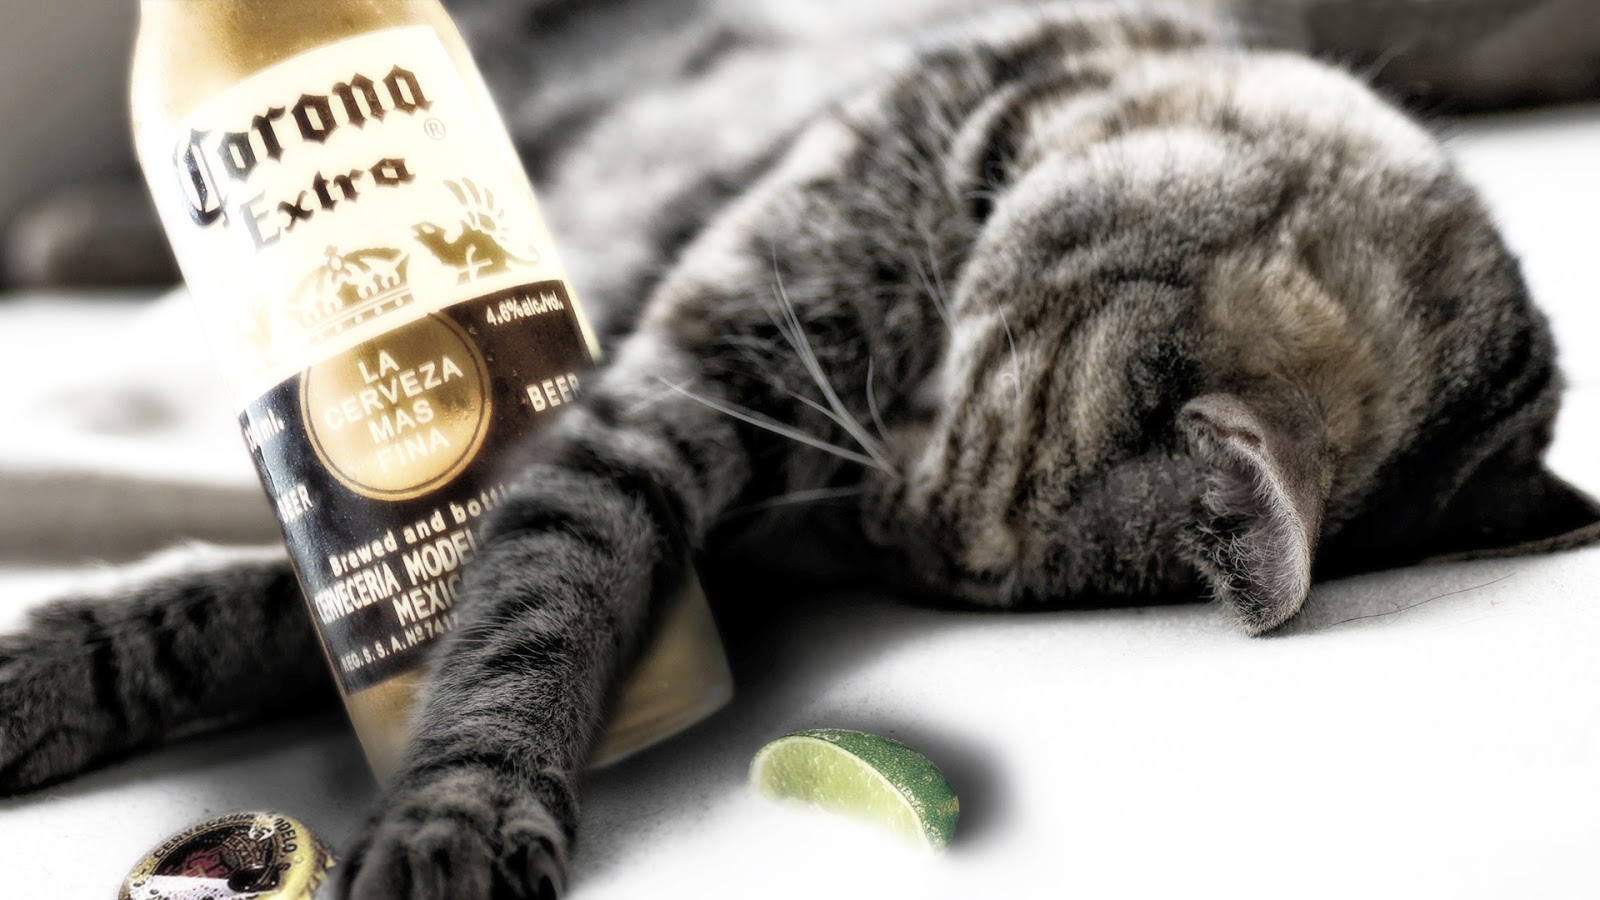 Cat Bottle Down Beer Funny Wallpapers